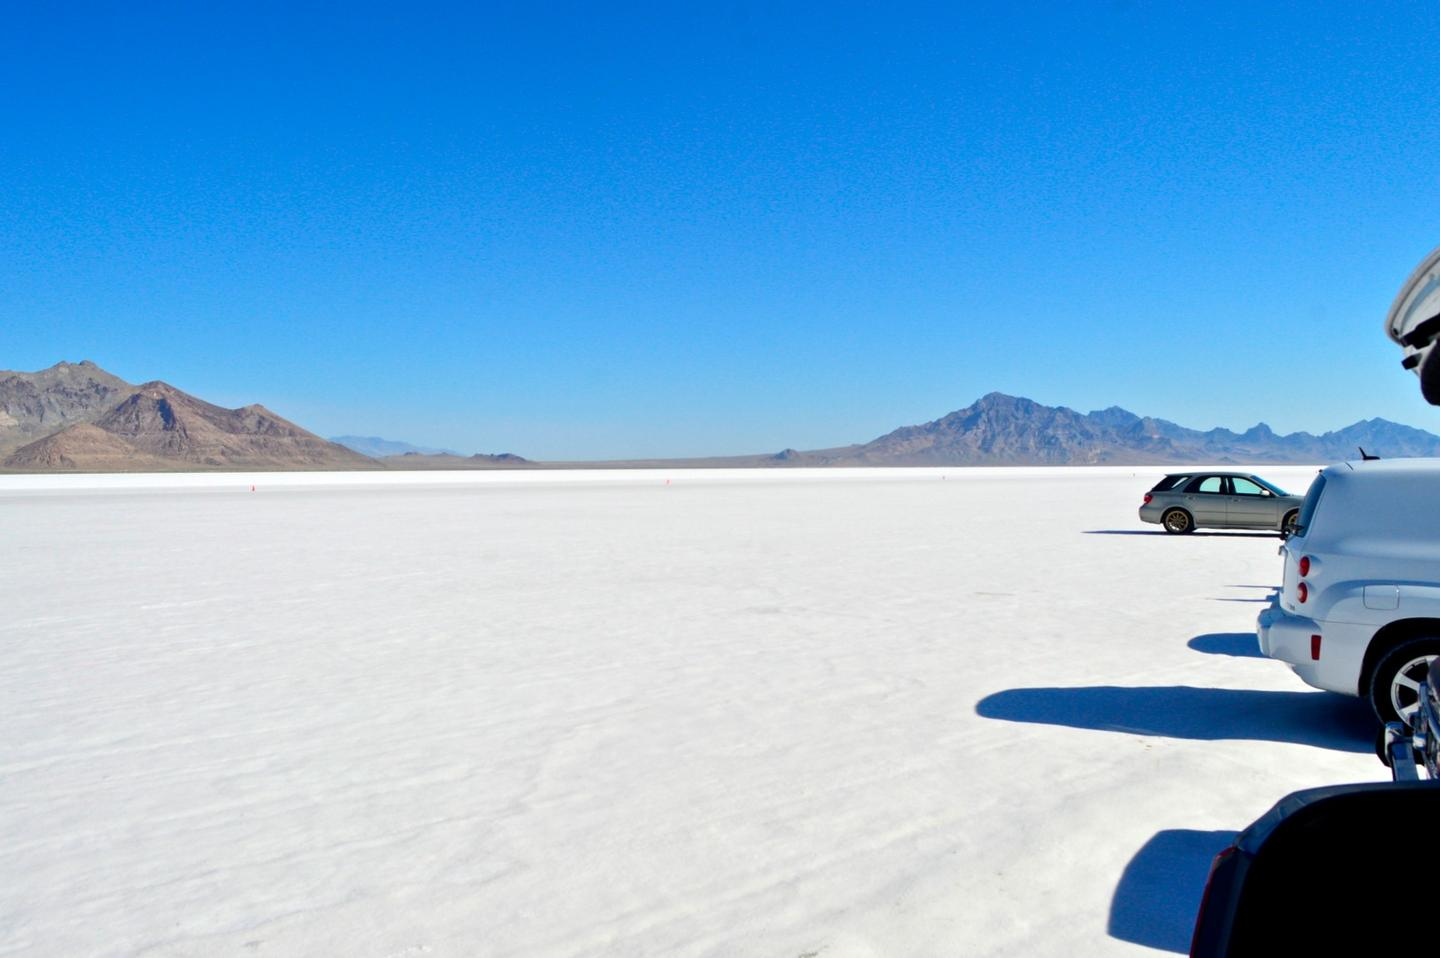 Our first look at the wide expanse of mountain-rimmed salt known as the Bonneville Salt Flats